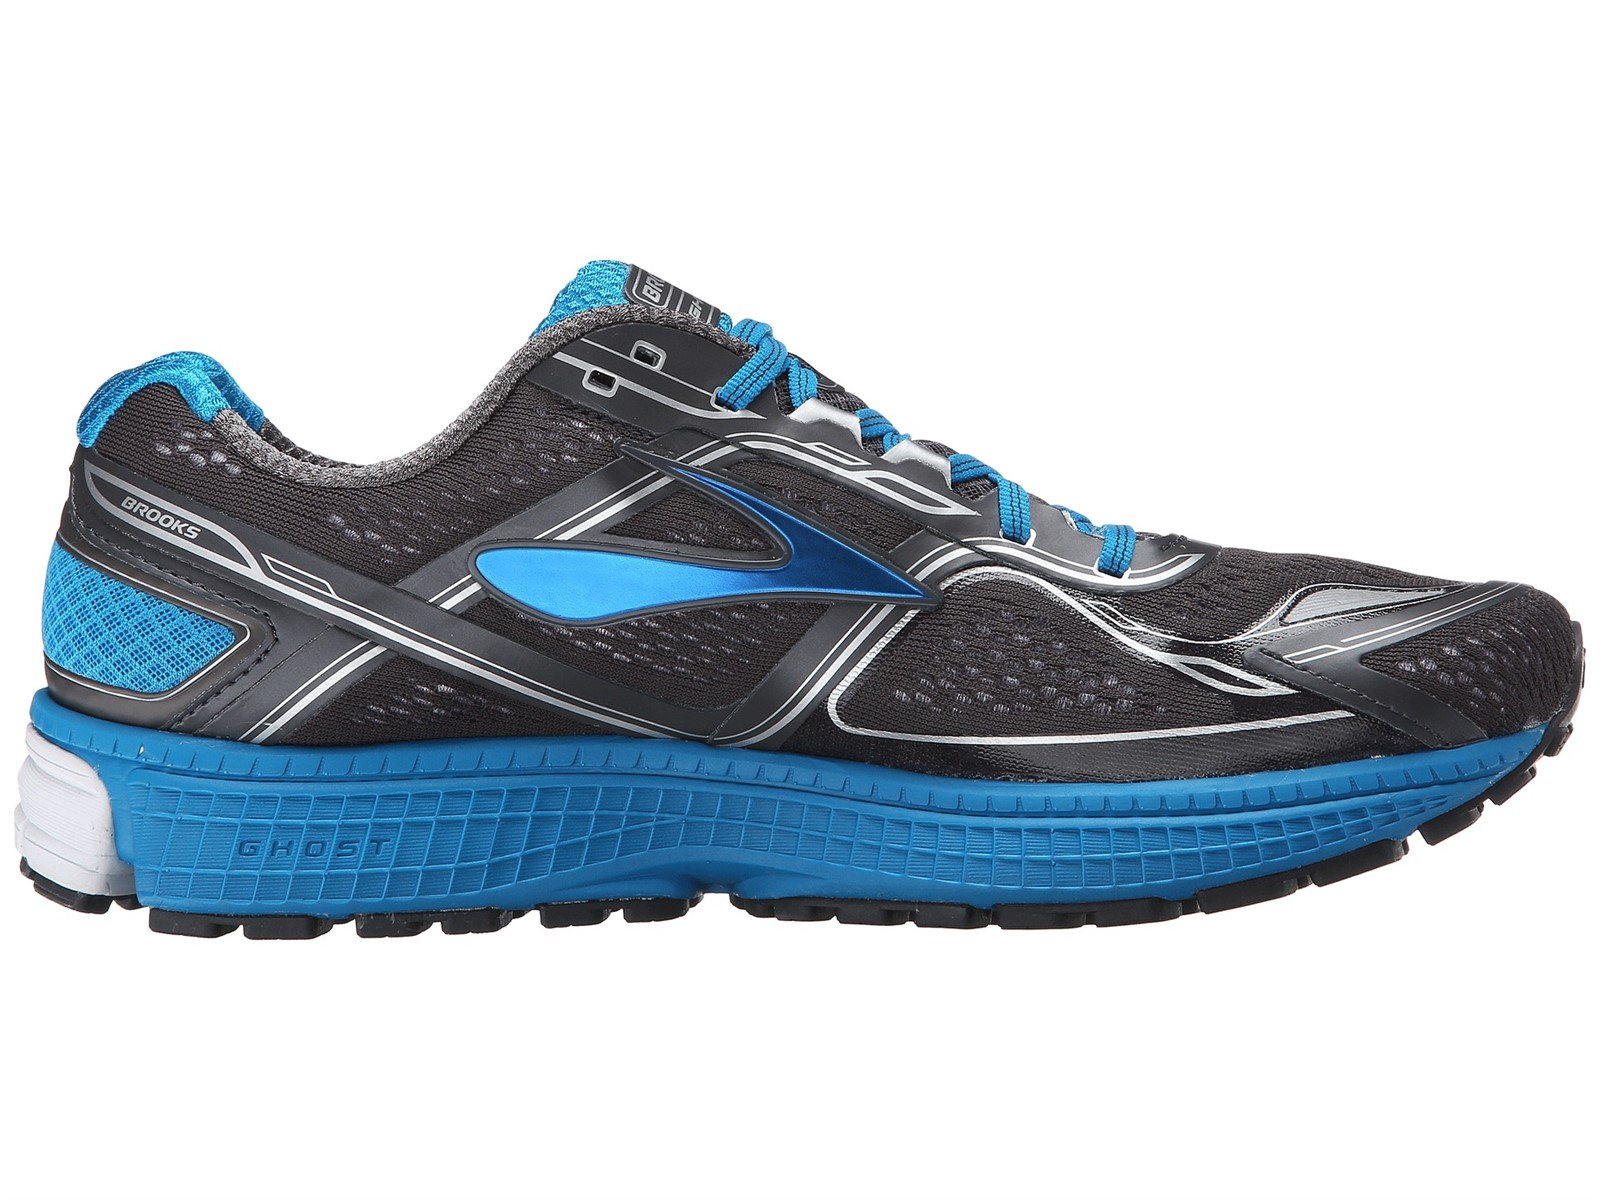 new ghost 8 running shoes mens size 11